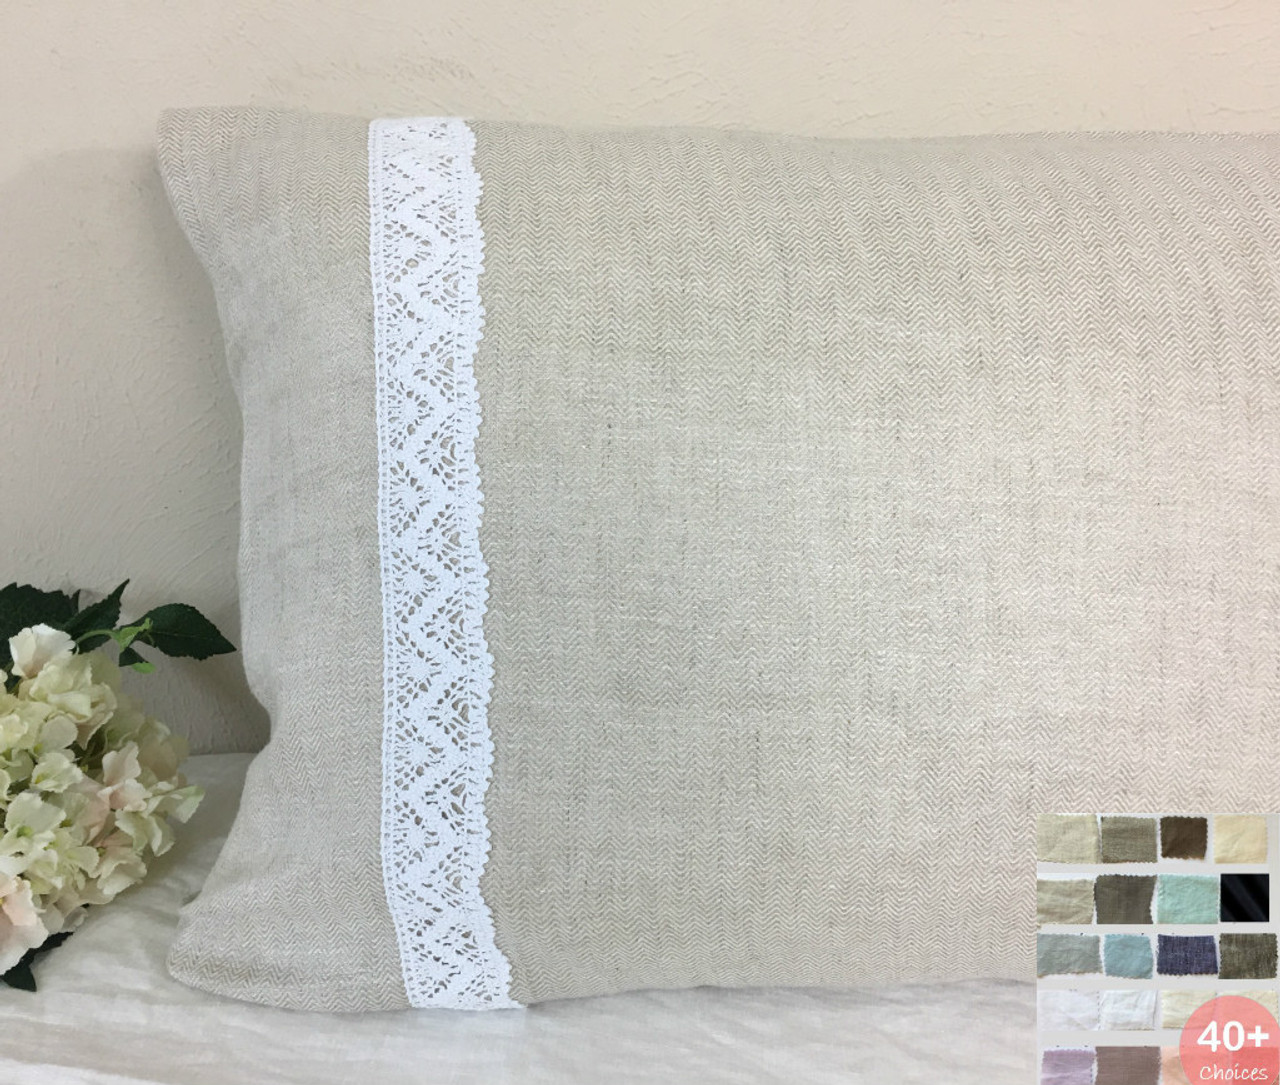 Linen Pillow Sham Cover With Crochet Lace White Grey Cream Pink